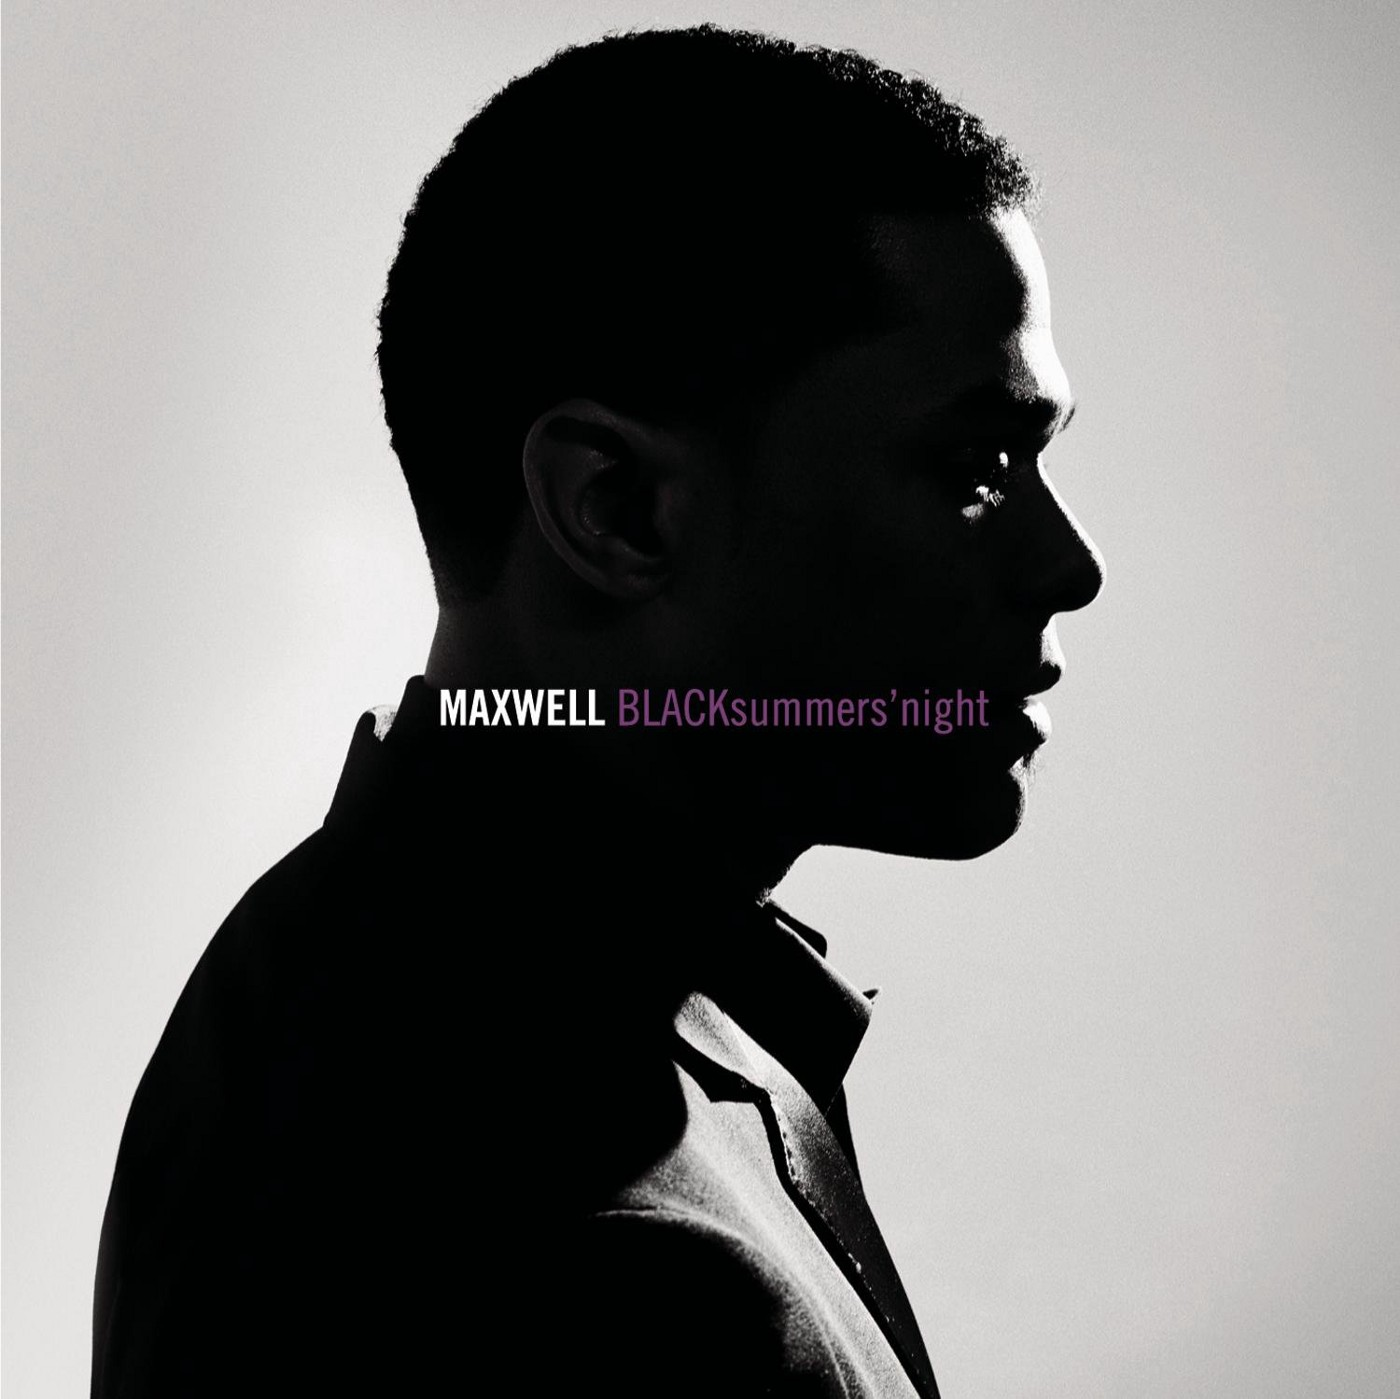 Cover of the album 'BLACKsummers'night' by Maxwell